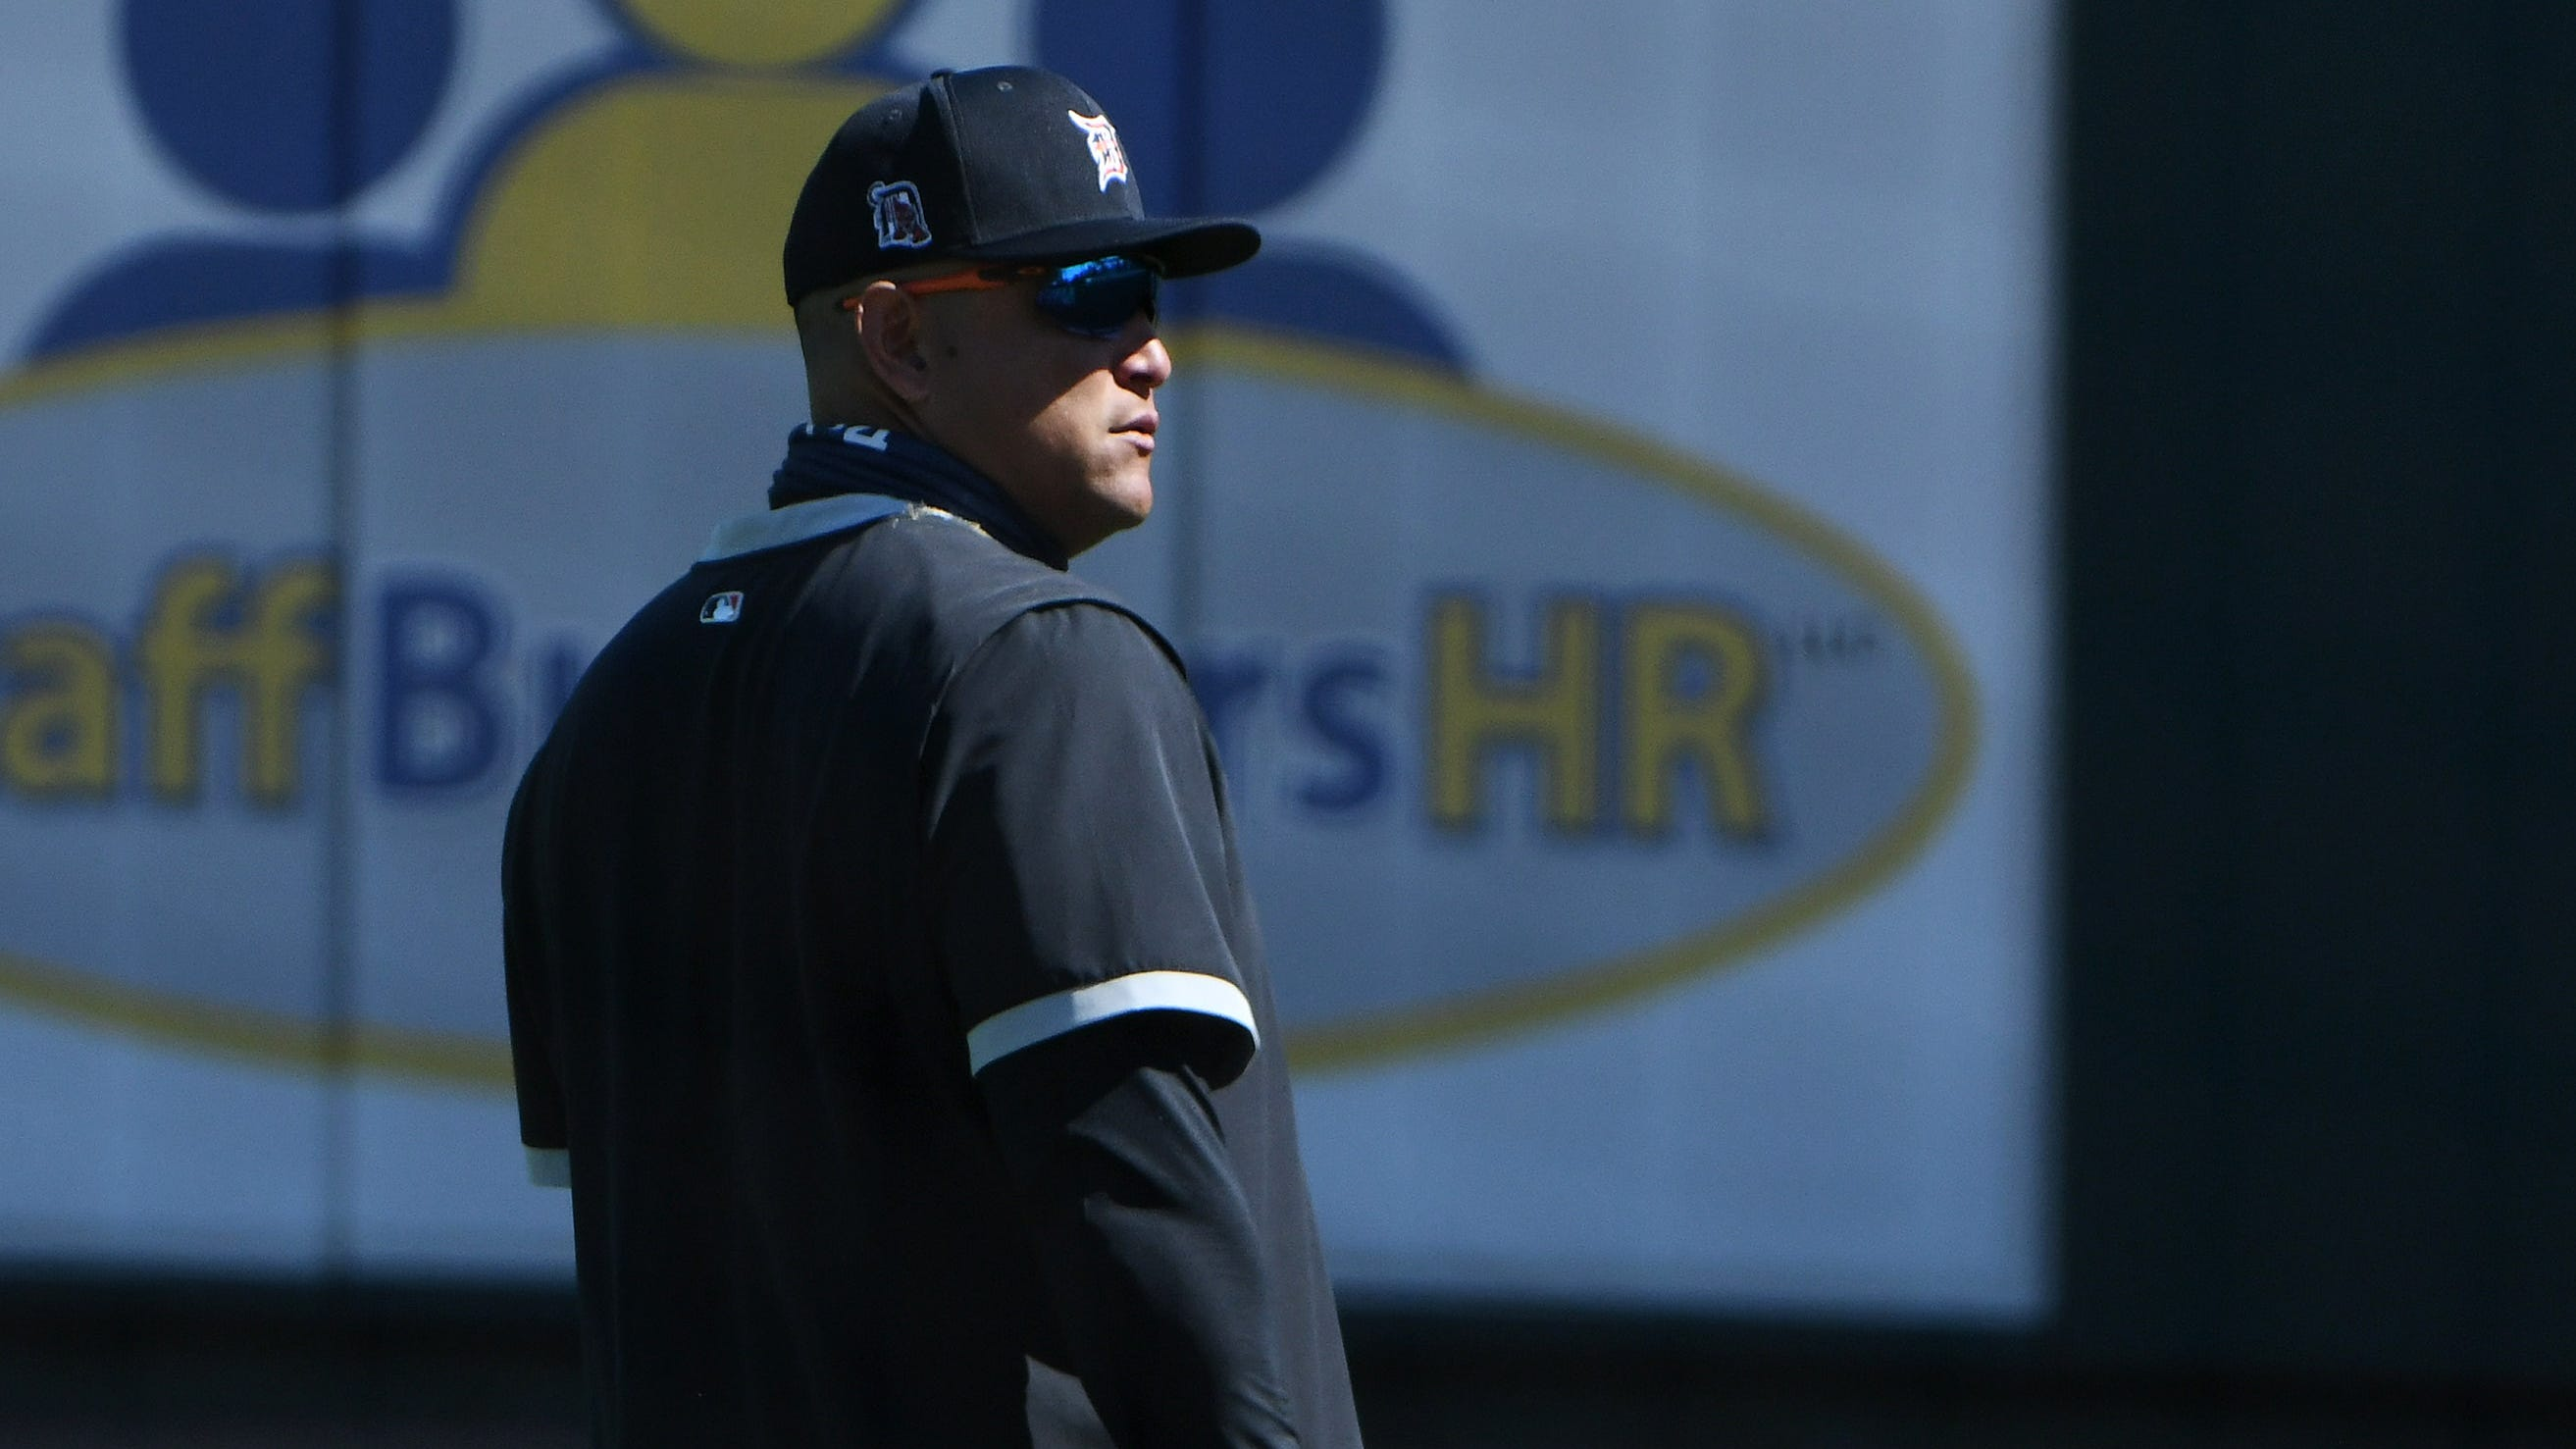 Miguel Cabrera walks in the outfield near the end of the Detroit Tigers workout.